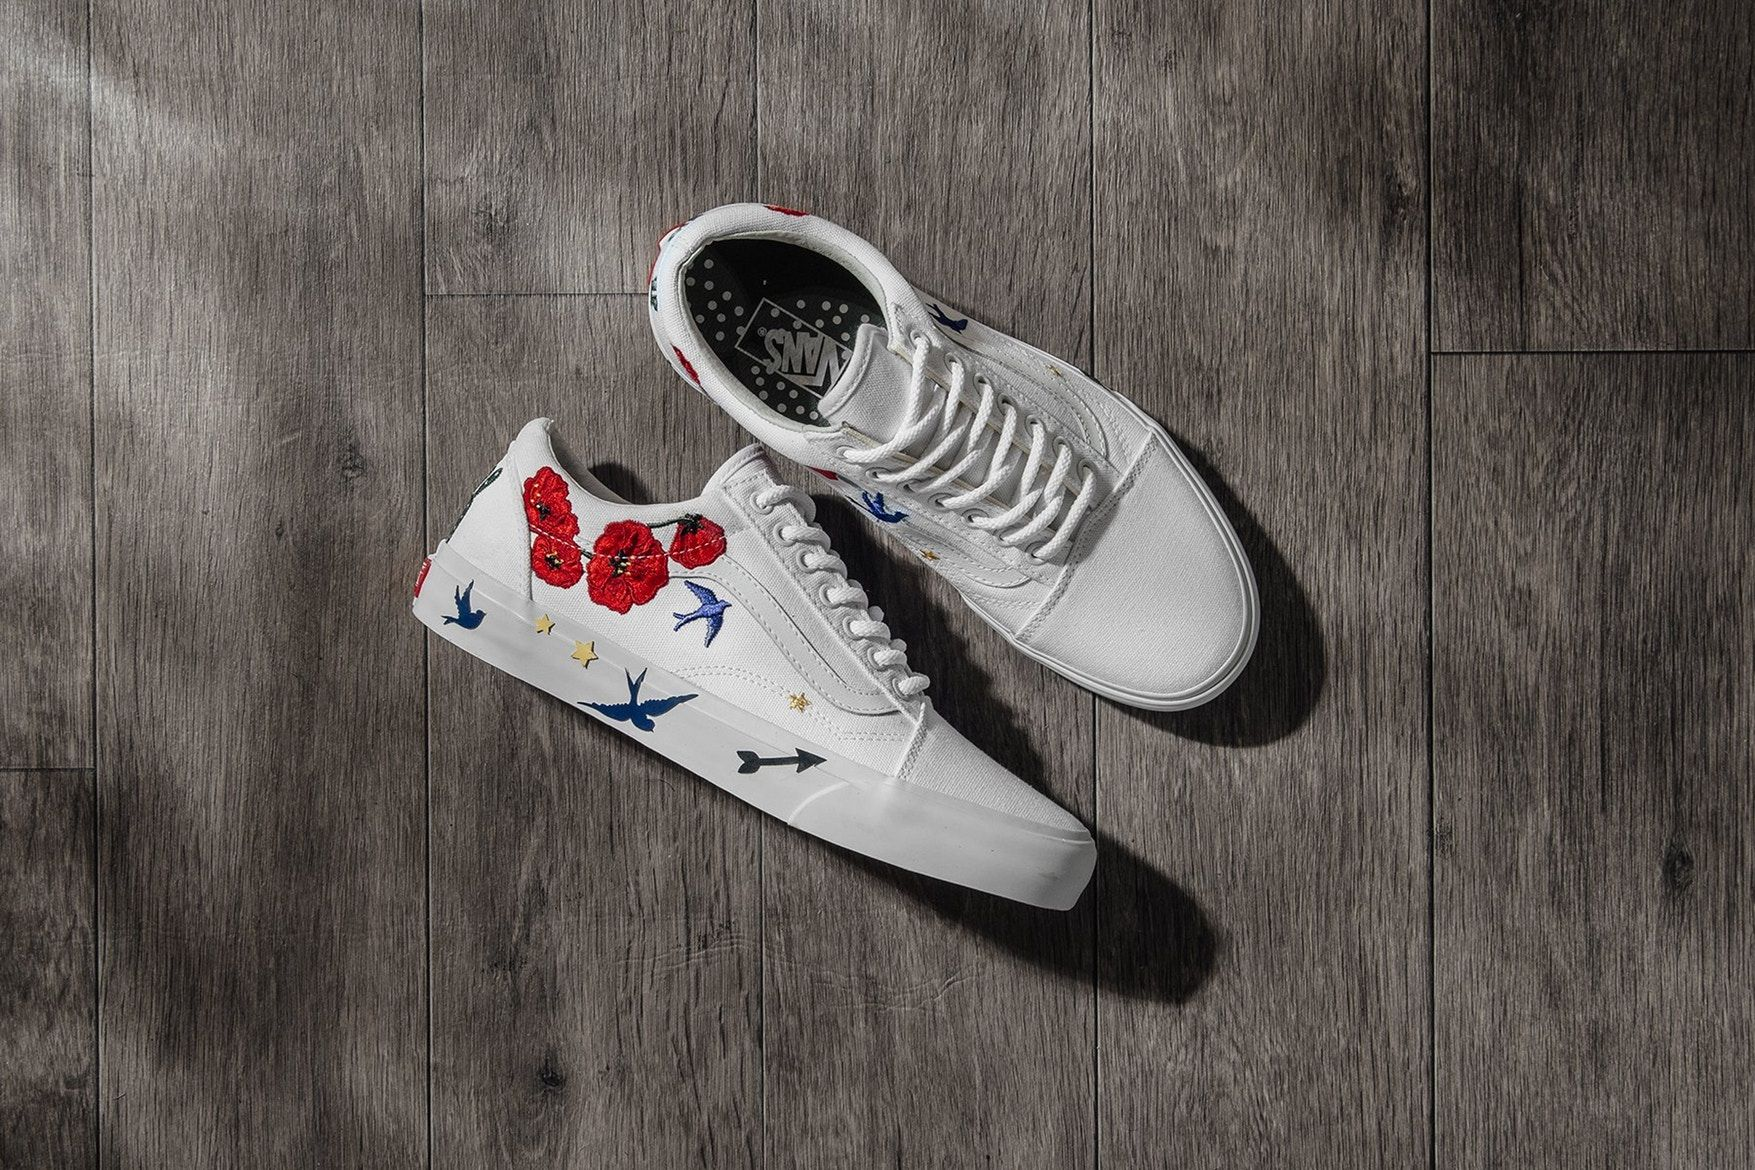 Mens fashion shoes, Sneakers street